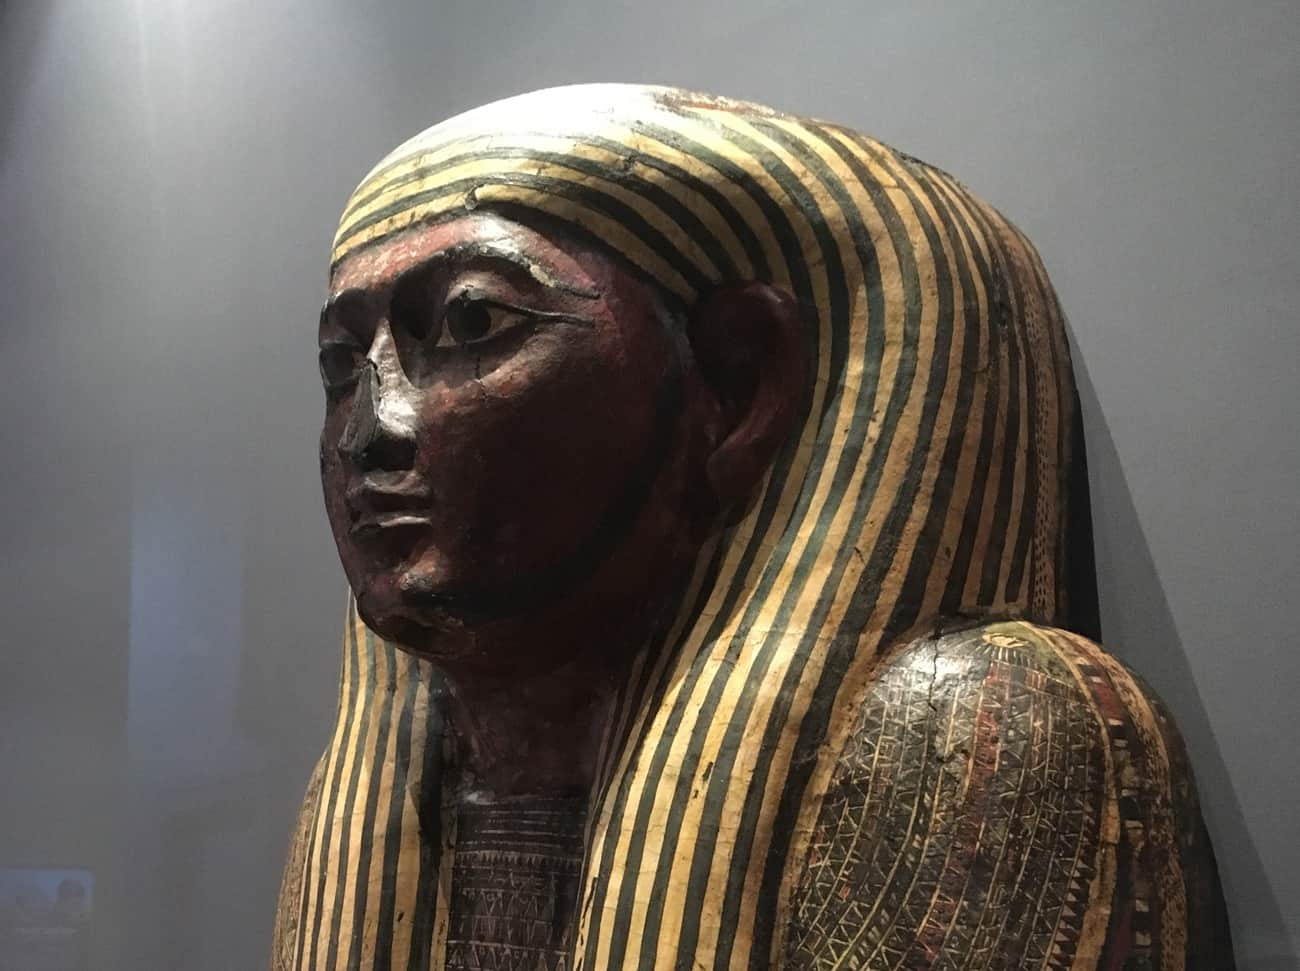 Close up of the head section of an Egyptian coffin on display at the World Museum in Liverpool